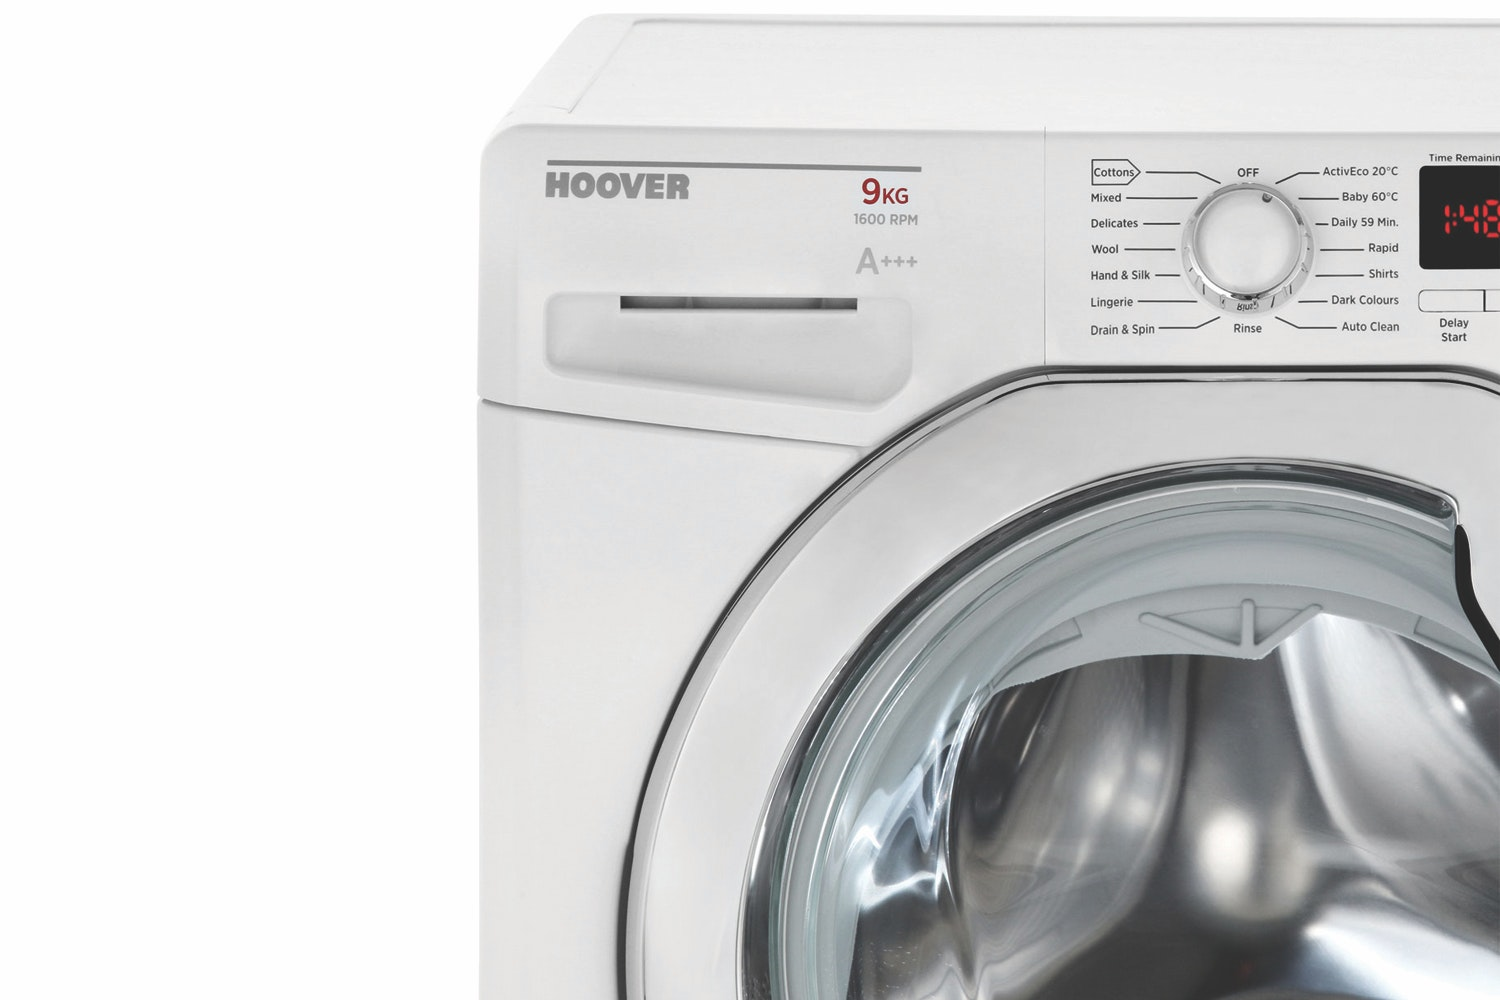 Hoover 9kg Washing Machine | DHL1492D3/1-80